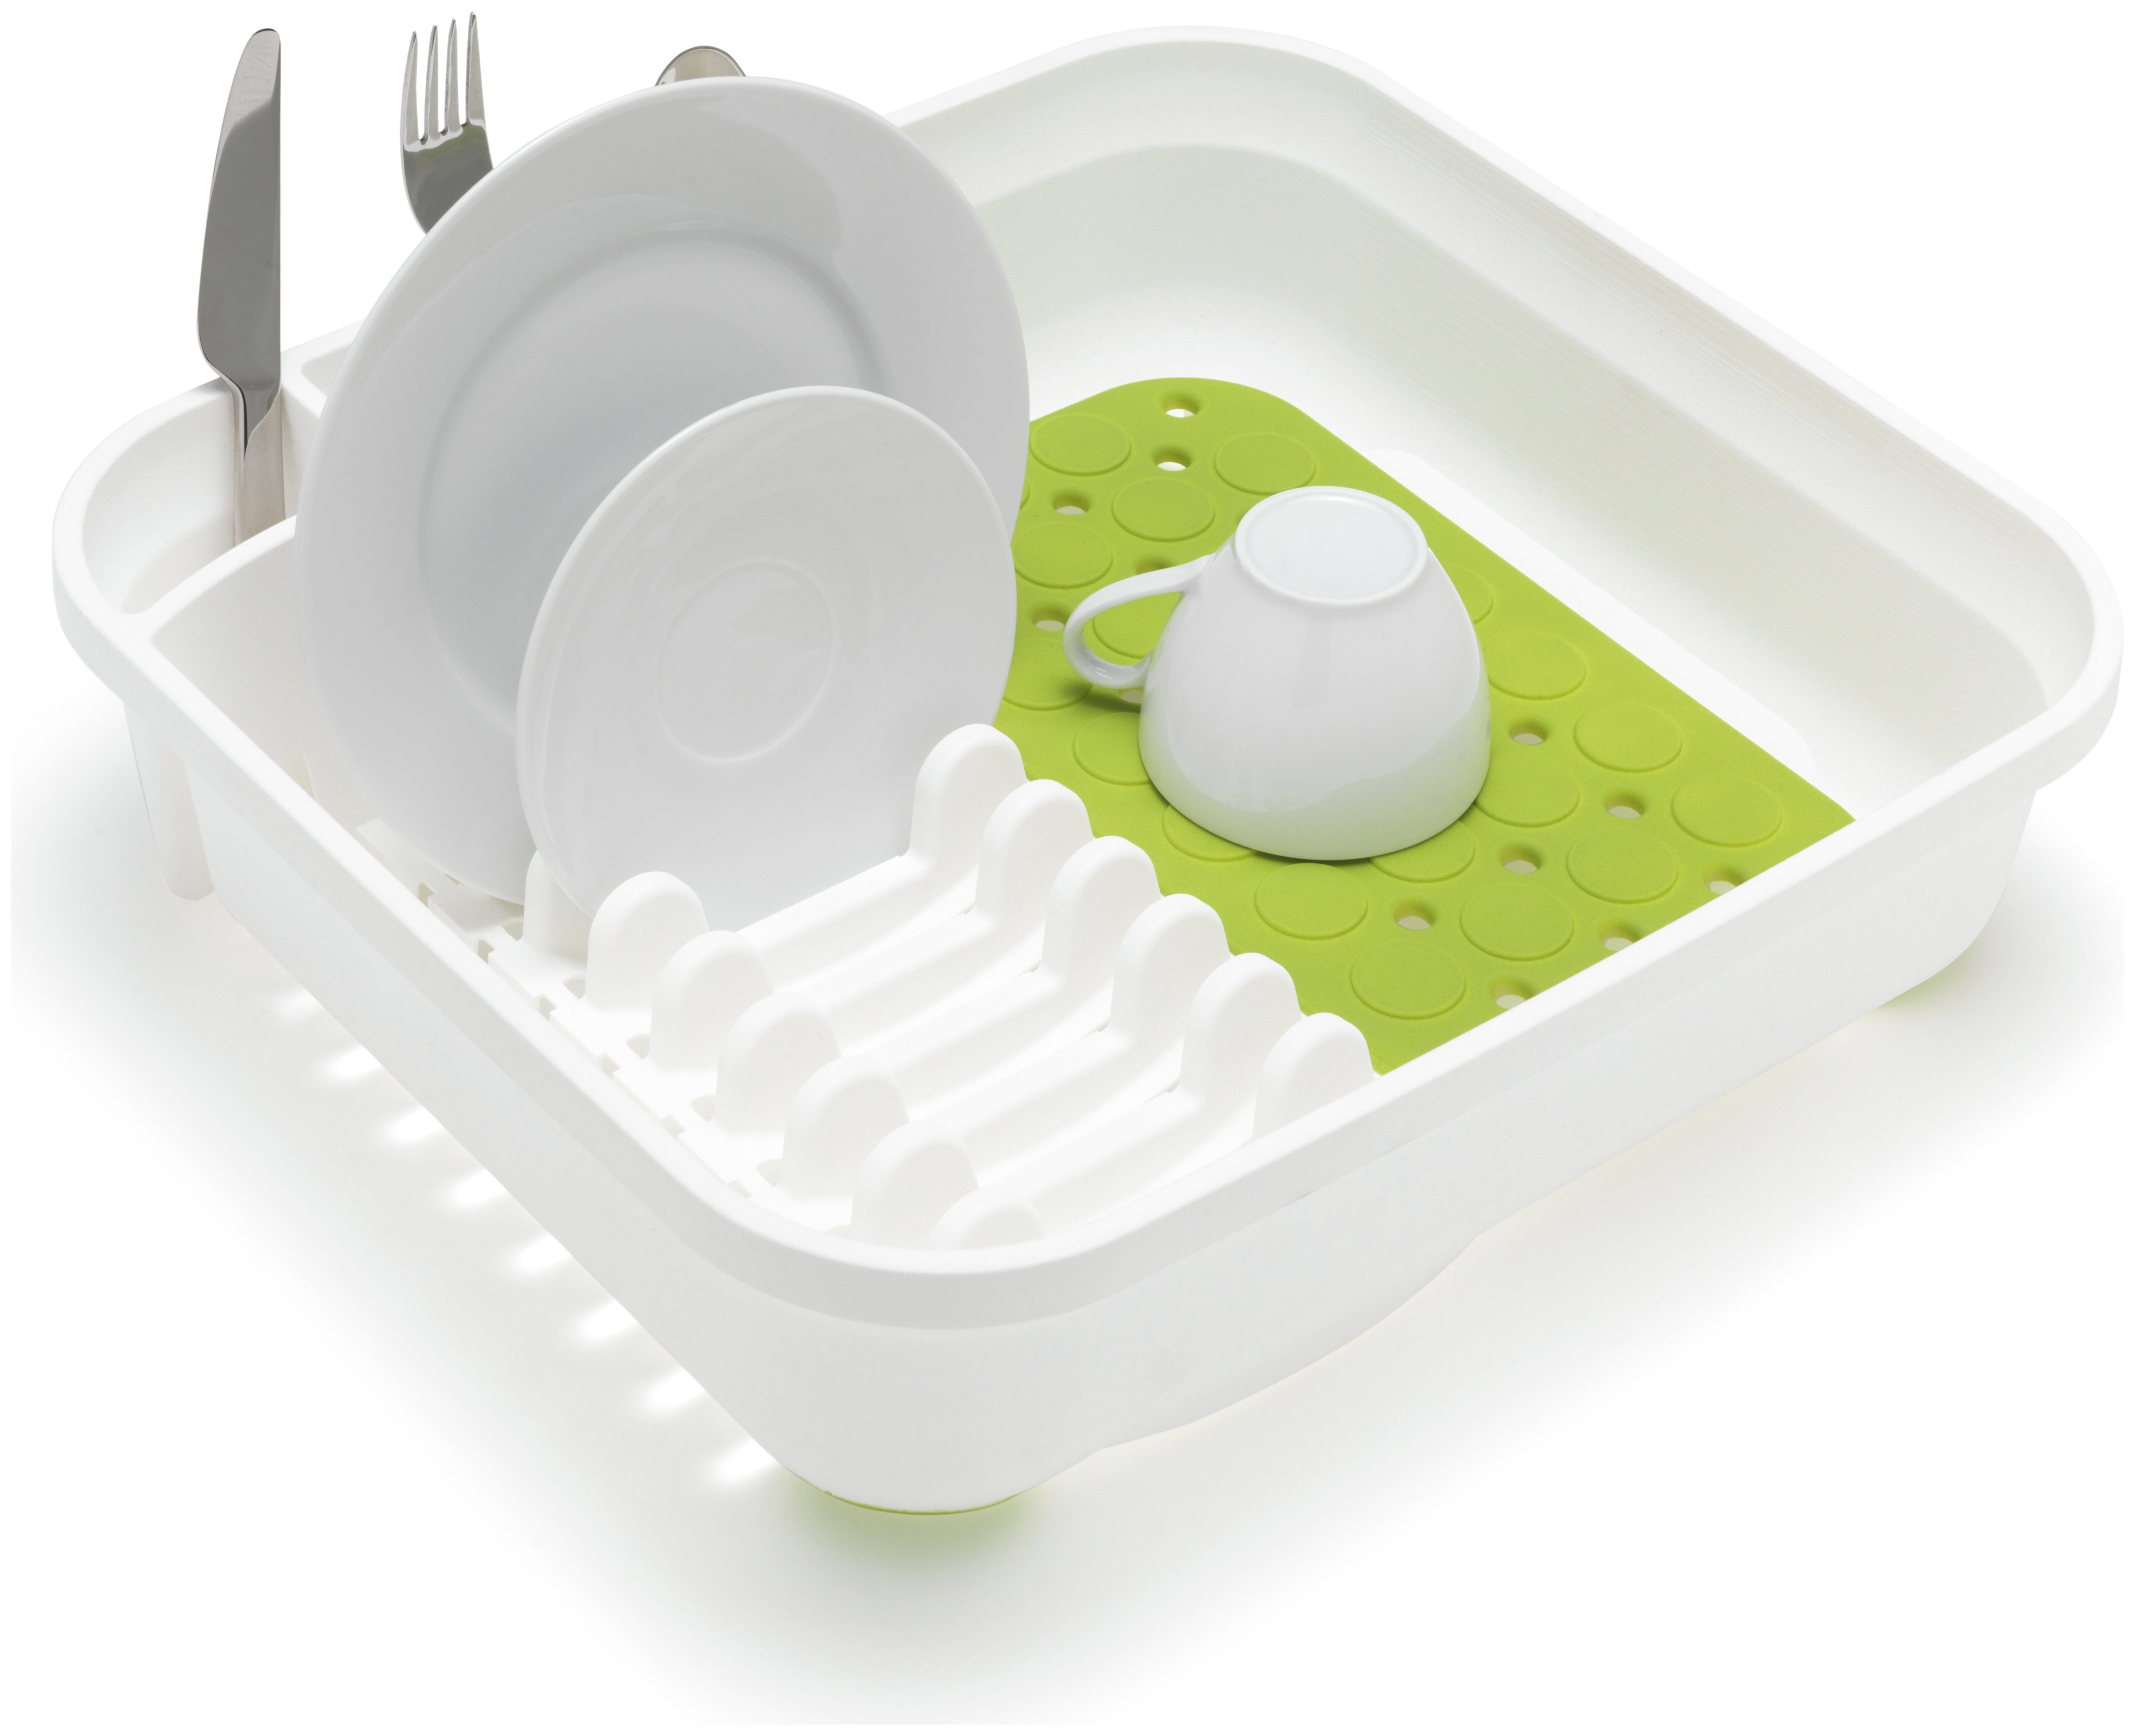 Image of Addis - Sink Drainer - White and Green